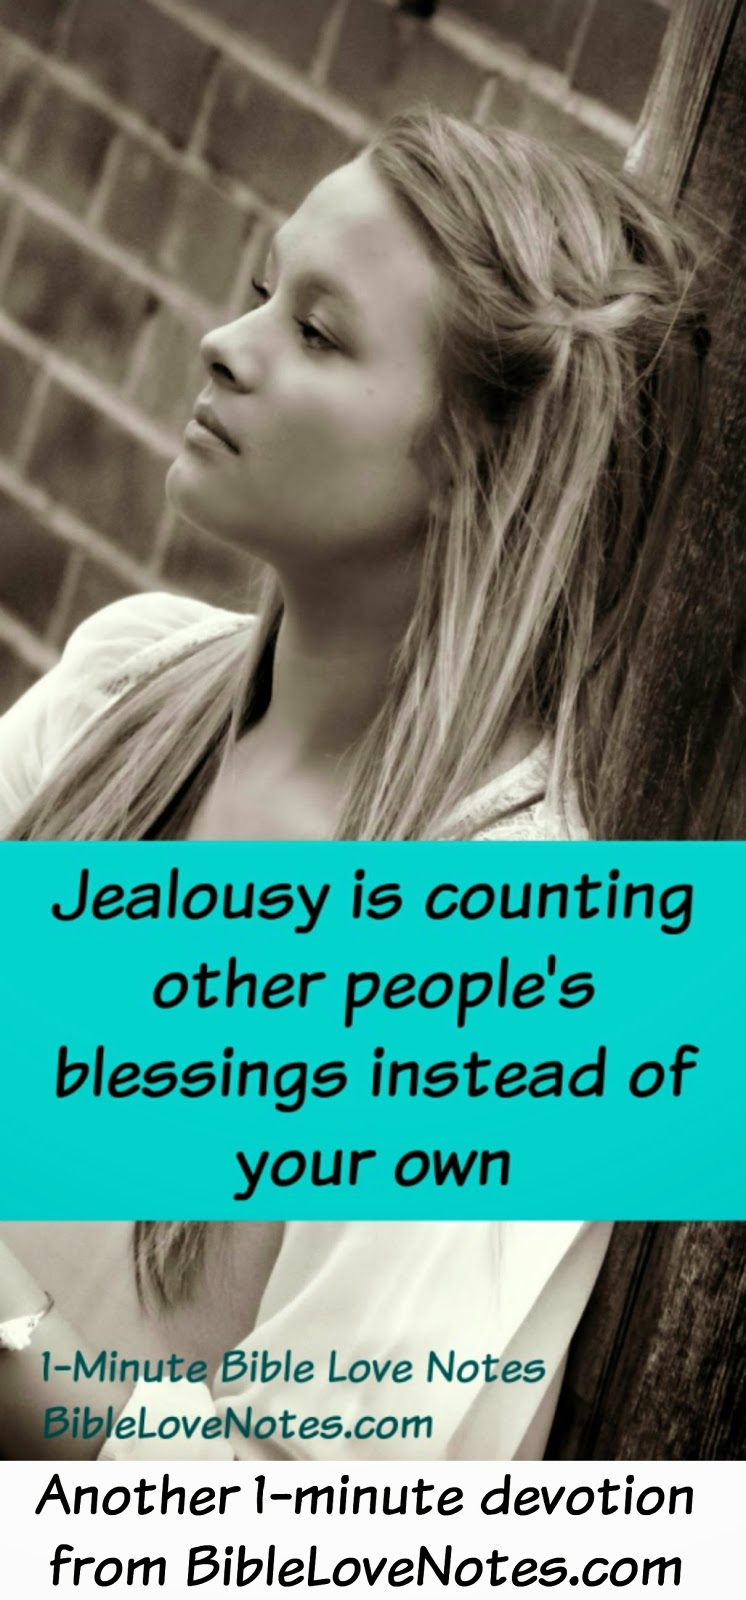 Jealousy, envy, Genesis 37, jealousy is counting other people's blessings